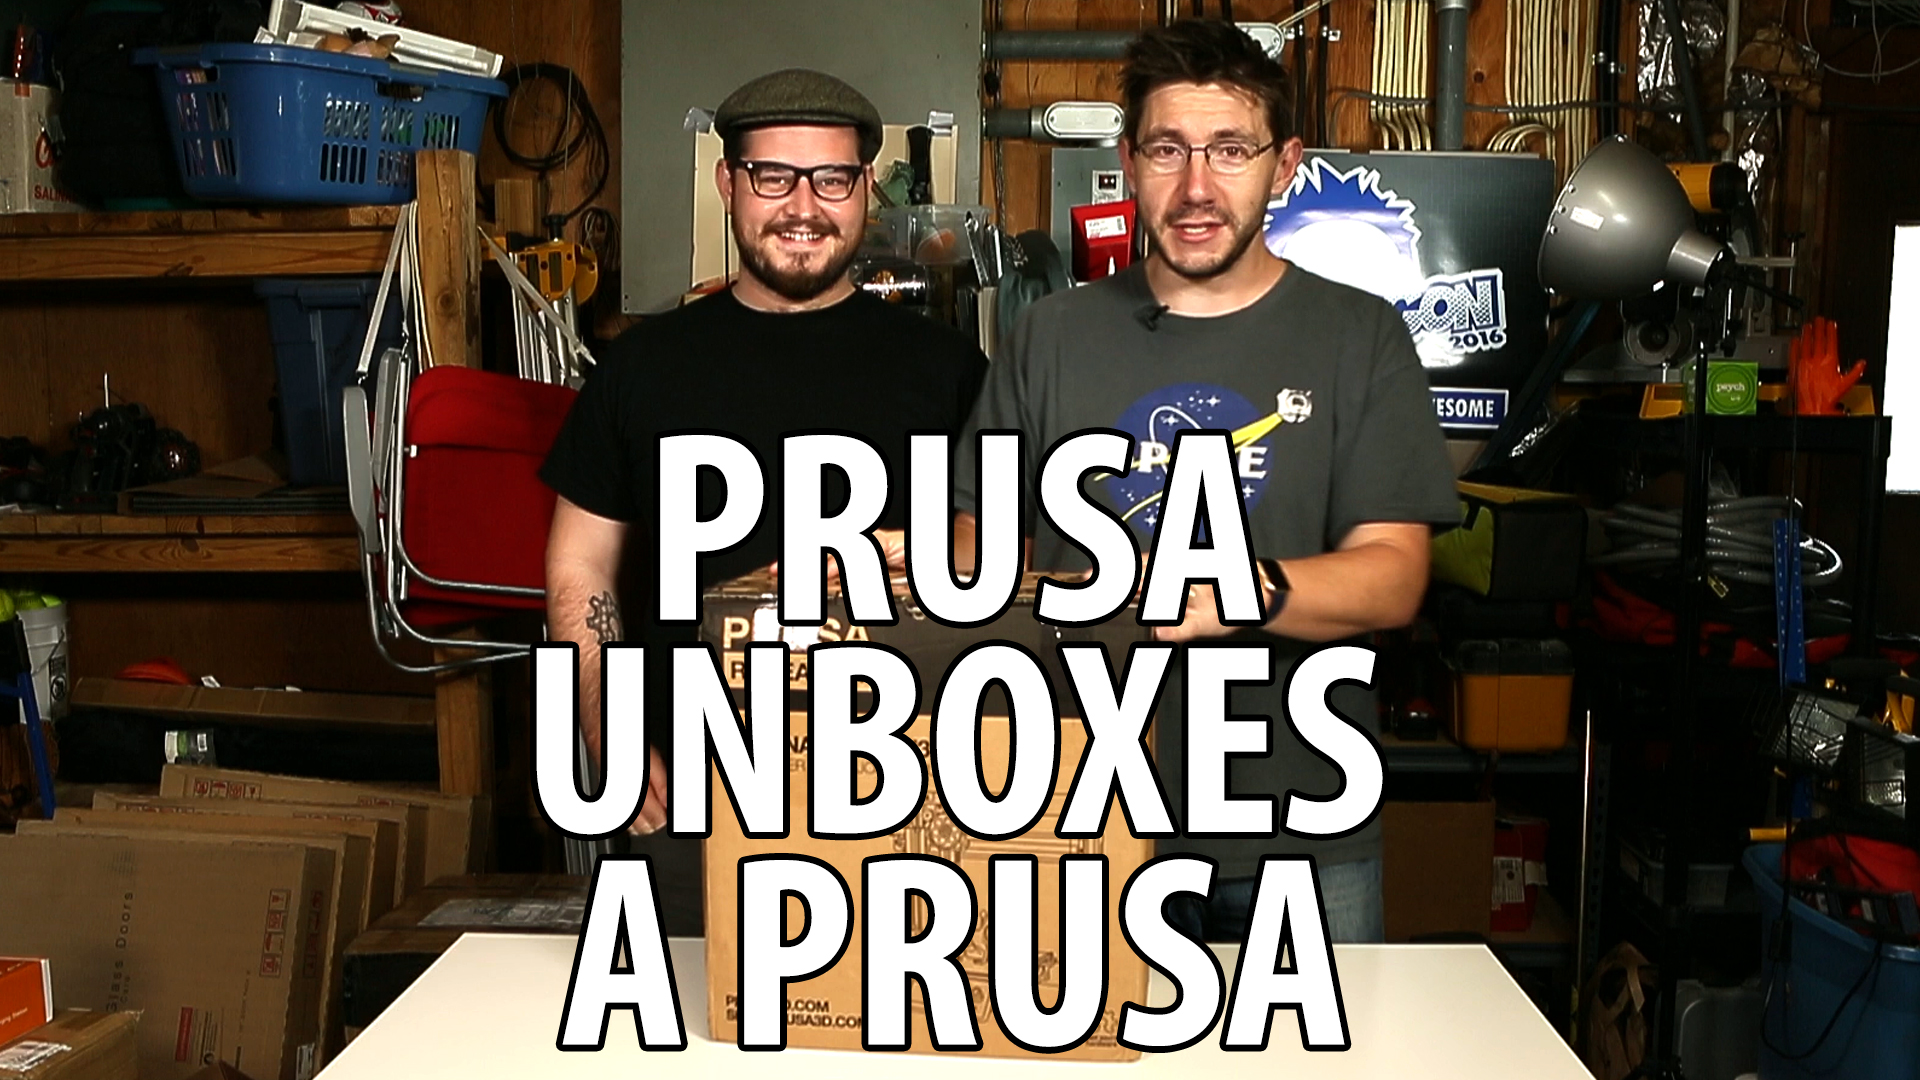 Josef Prusa Unboxing the Prusa i3 mk2 Kit 3D Printer